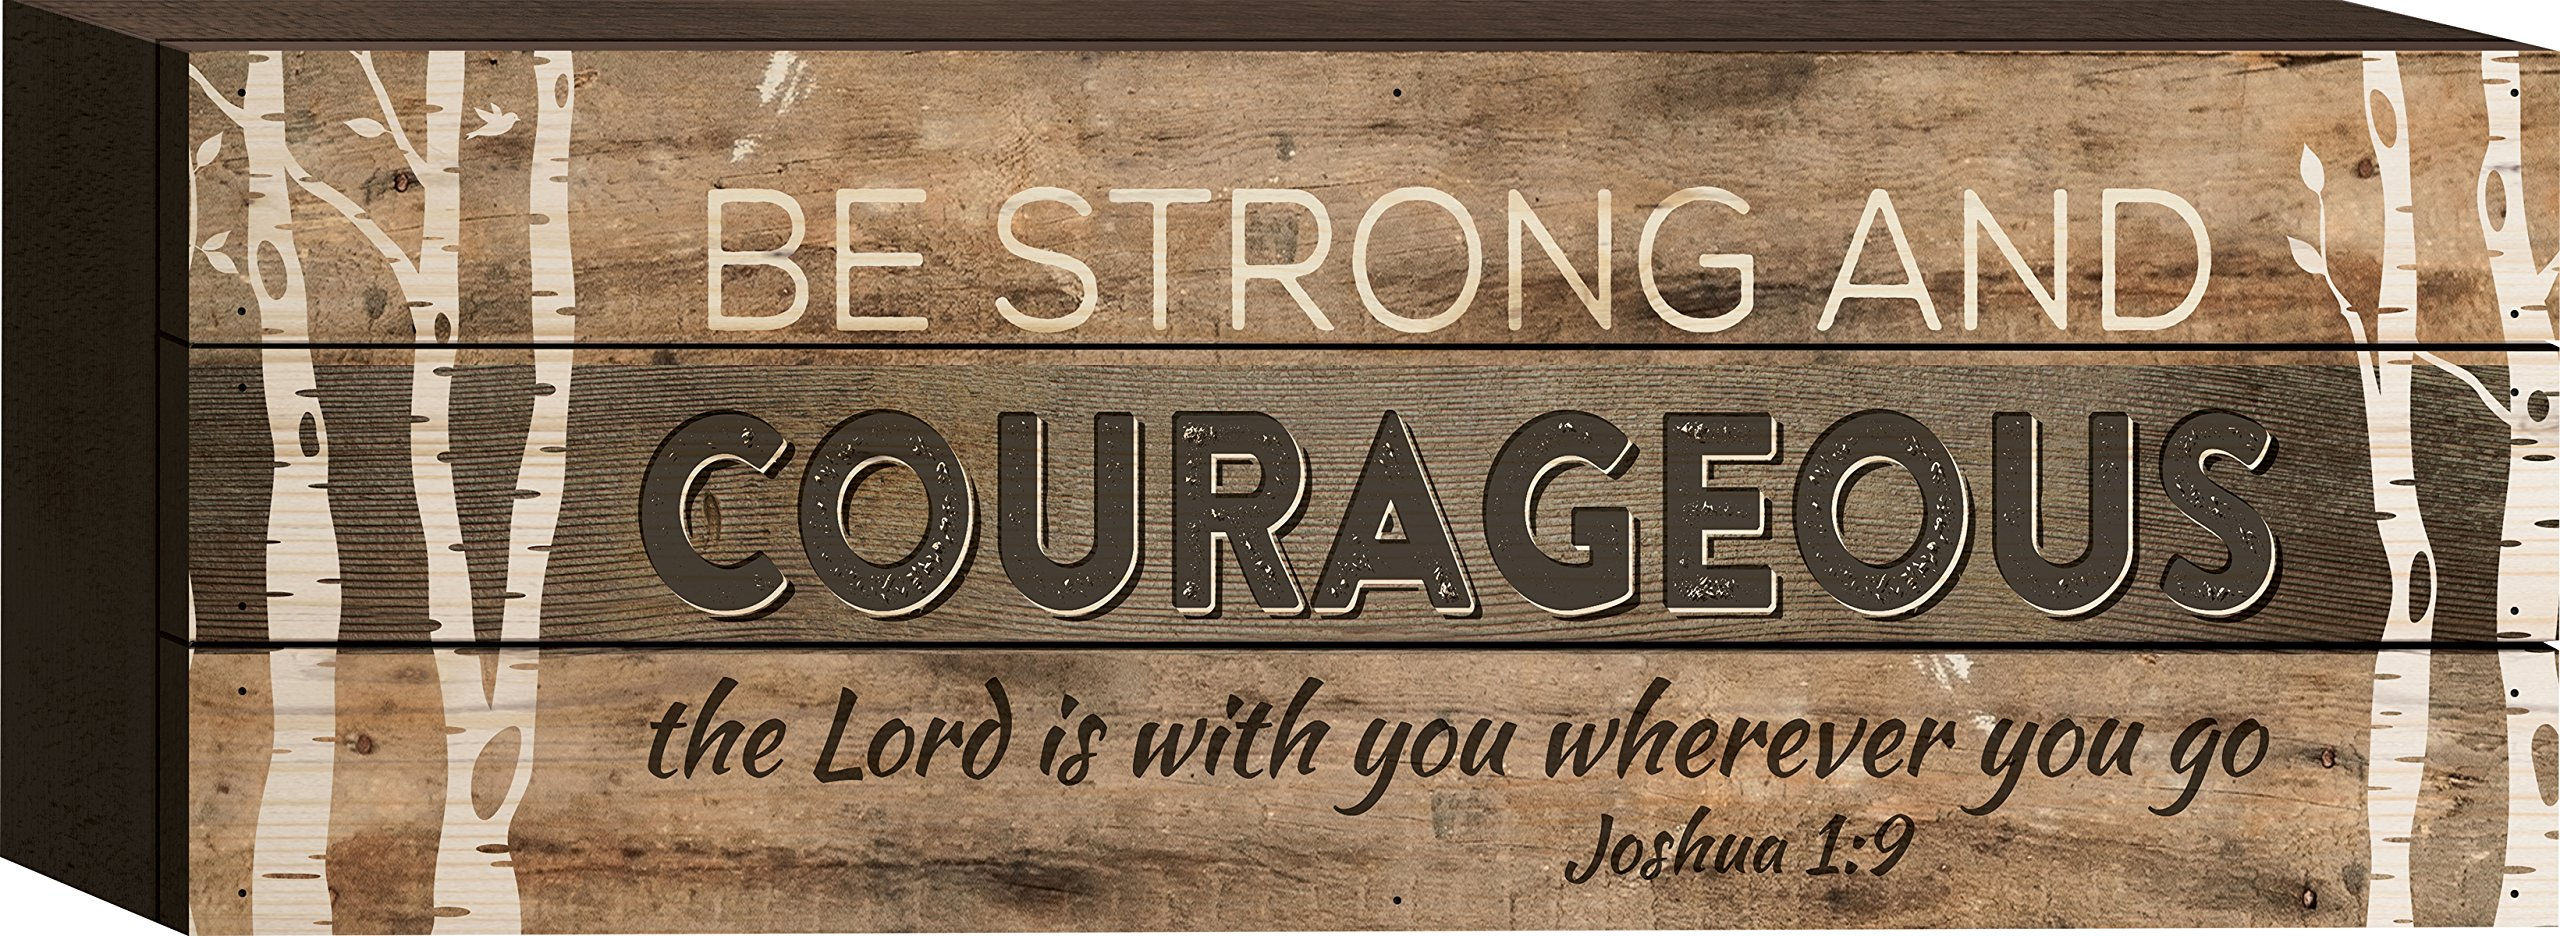 Be Strong and Courageous Joshua 1:9 4.5 x 12 inch Wood Sign Block Plaque